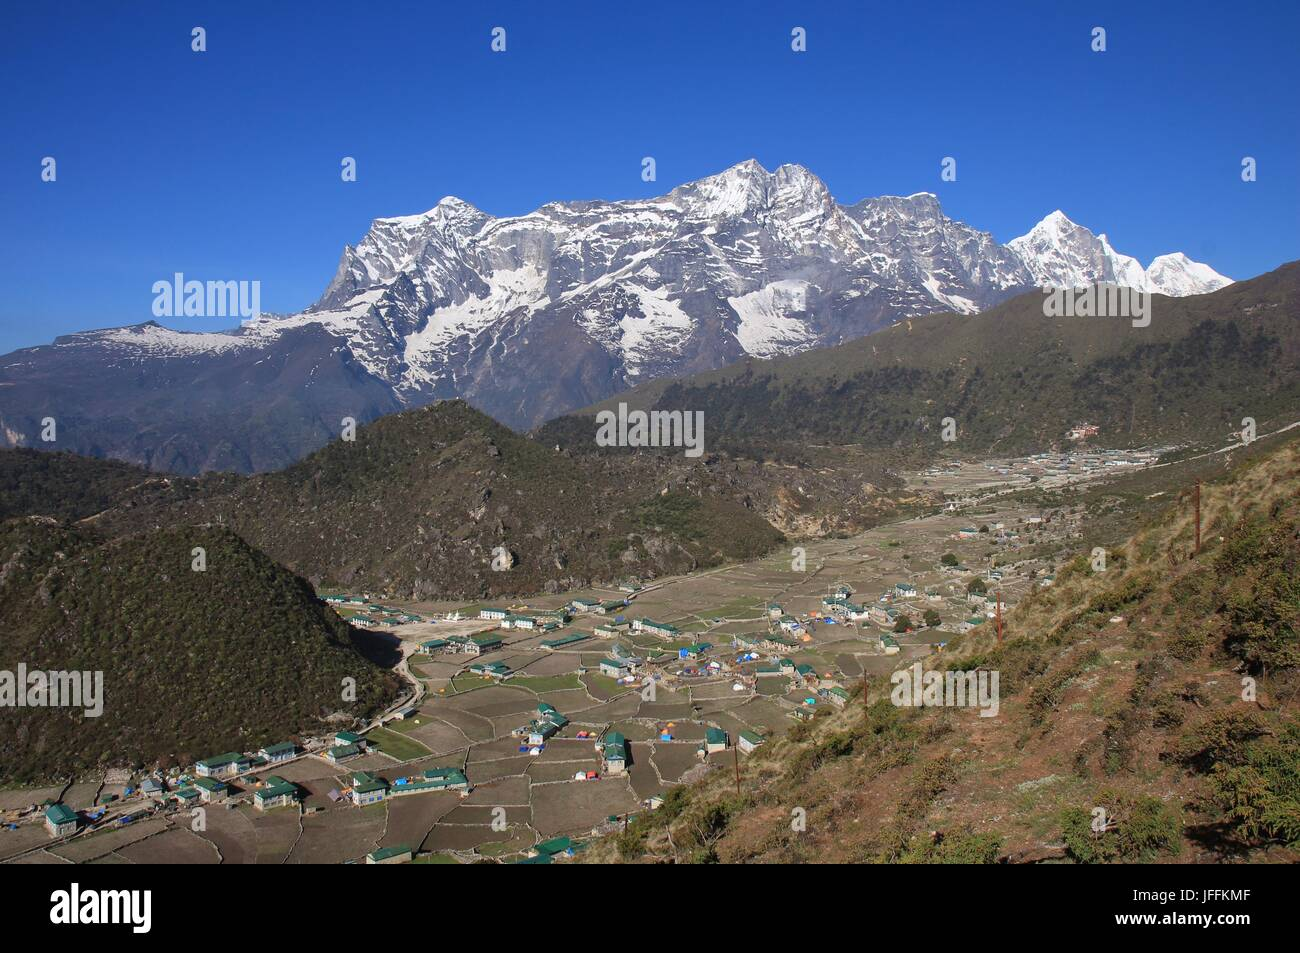 Sherpa village Khumjung and high mountains - Stock Image